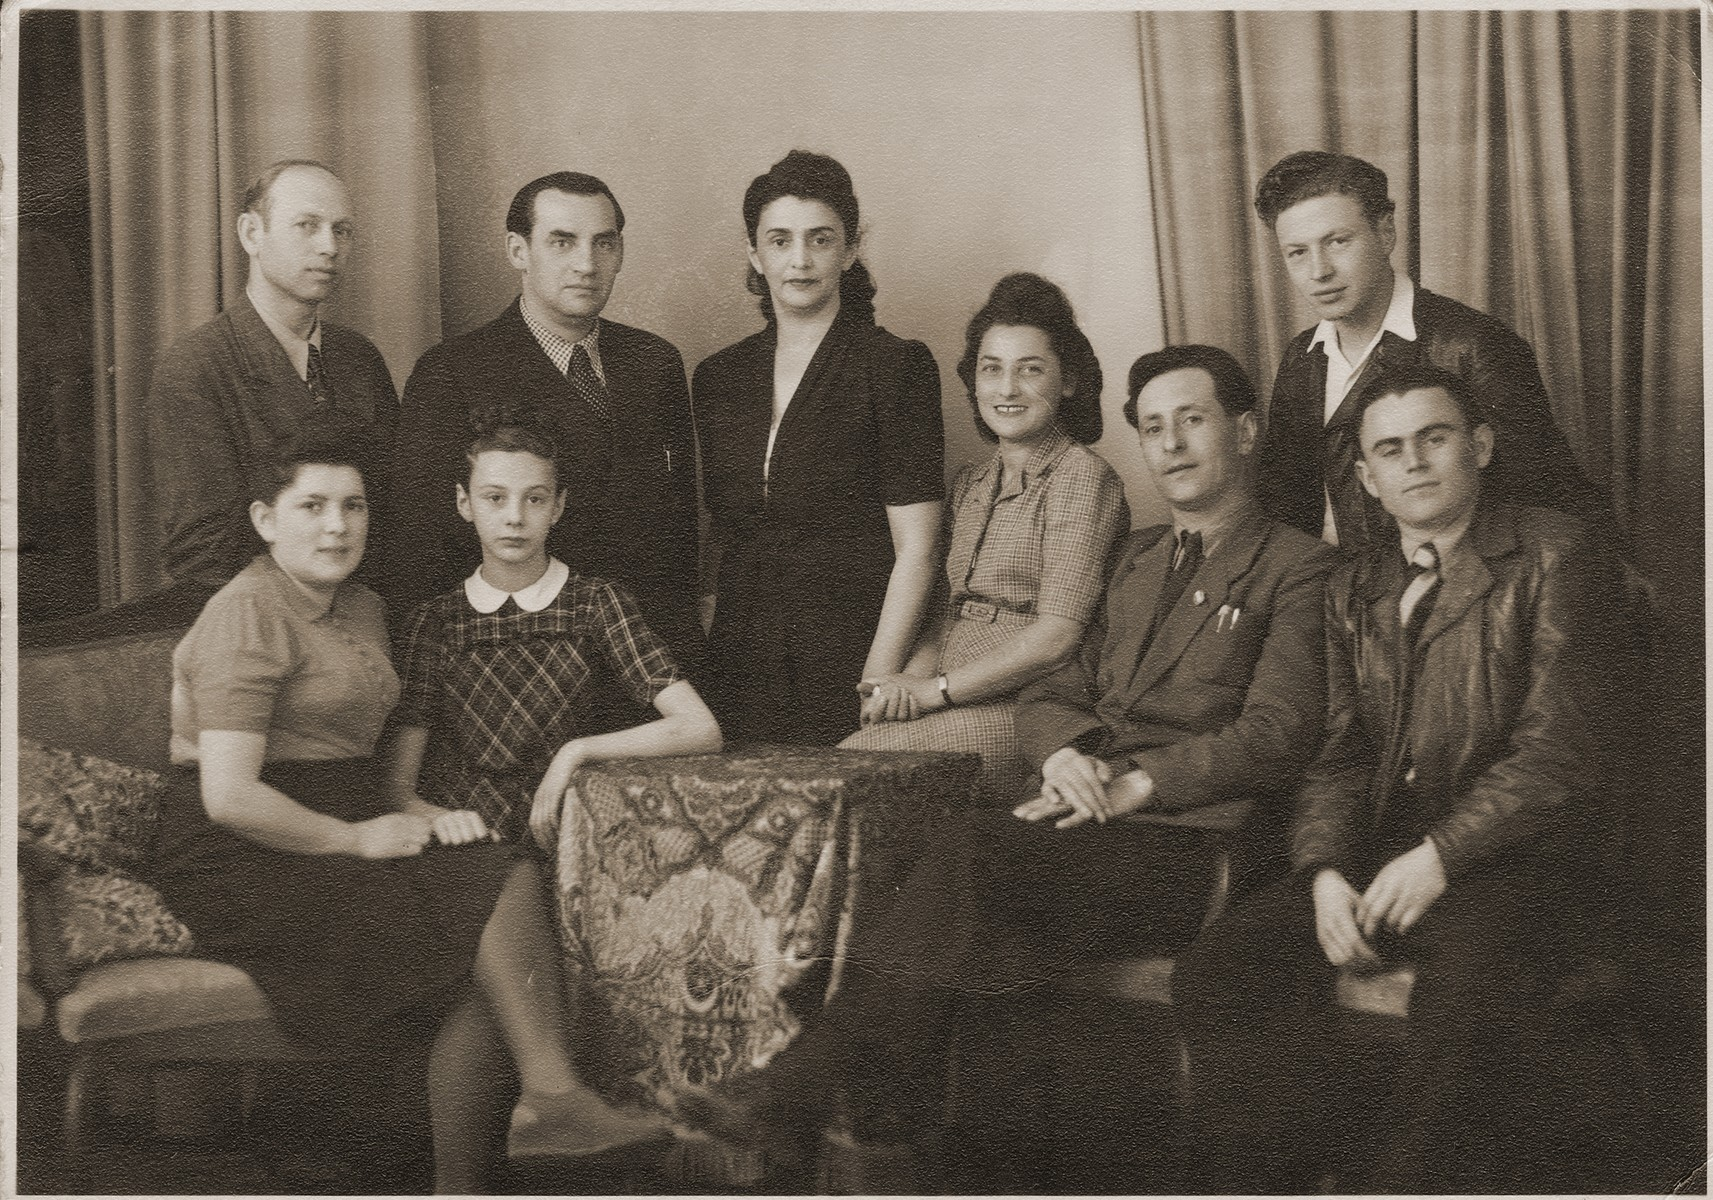 Group portrait off Jewish DPs living in the city of Bayreuth.  Among those pictured standing are Feliz Kozywoda (William's uncle, second from the left) and Welek Luksenburg (right).  Seated (second from the left, the daughter of Moniek Merin) is Helinka Merin, standing in the center is Maryska Gancwiach (the first wife of Moniek Merin).